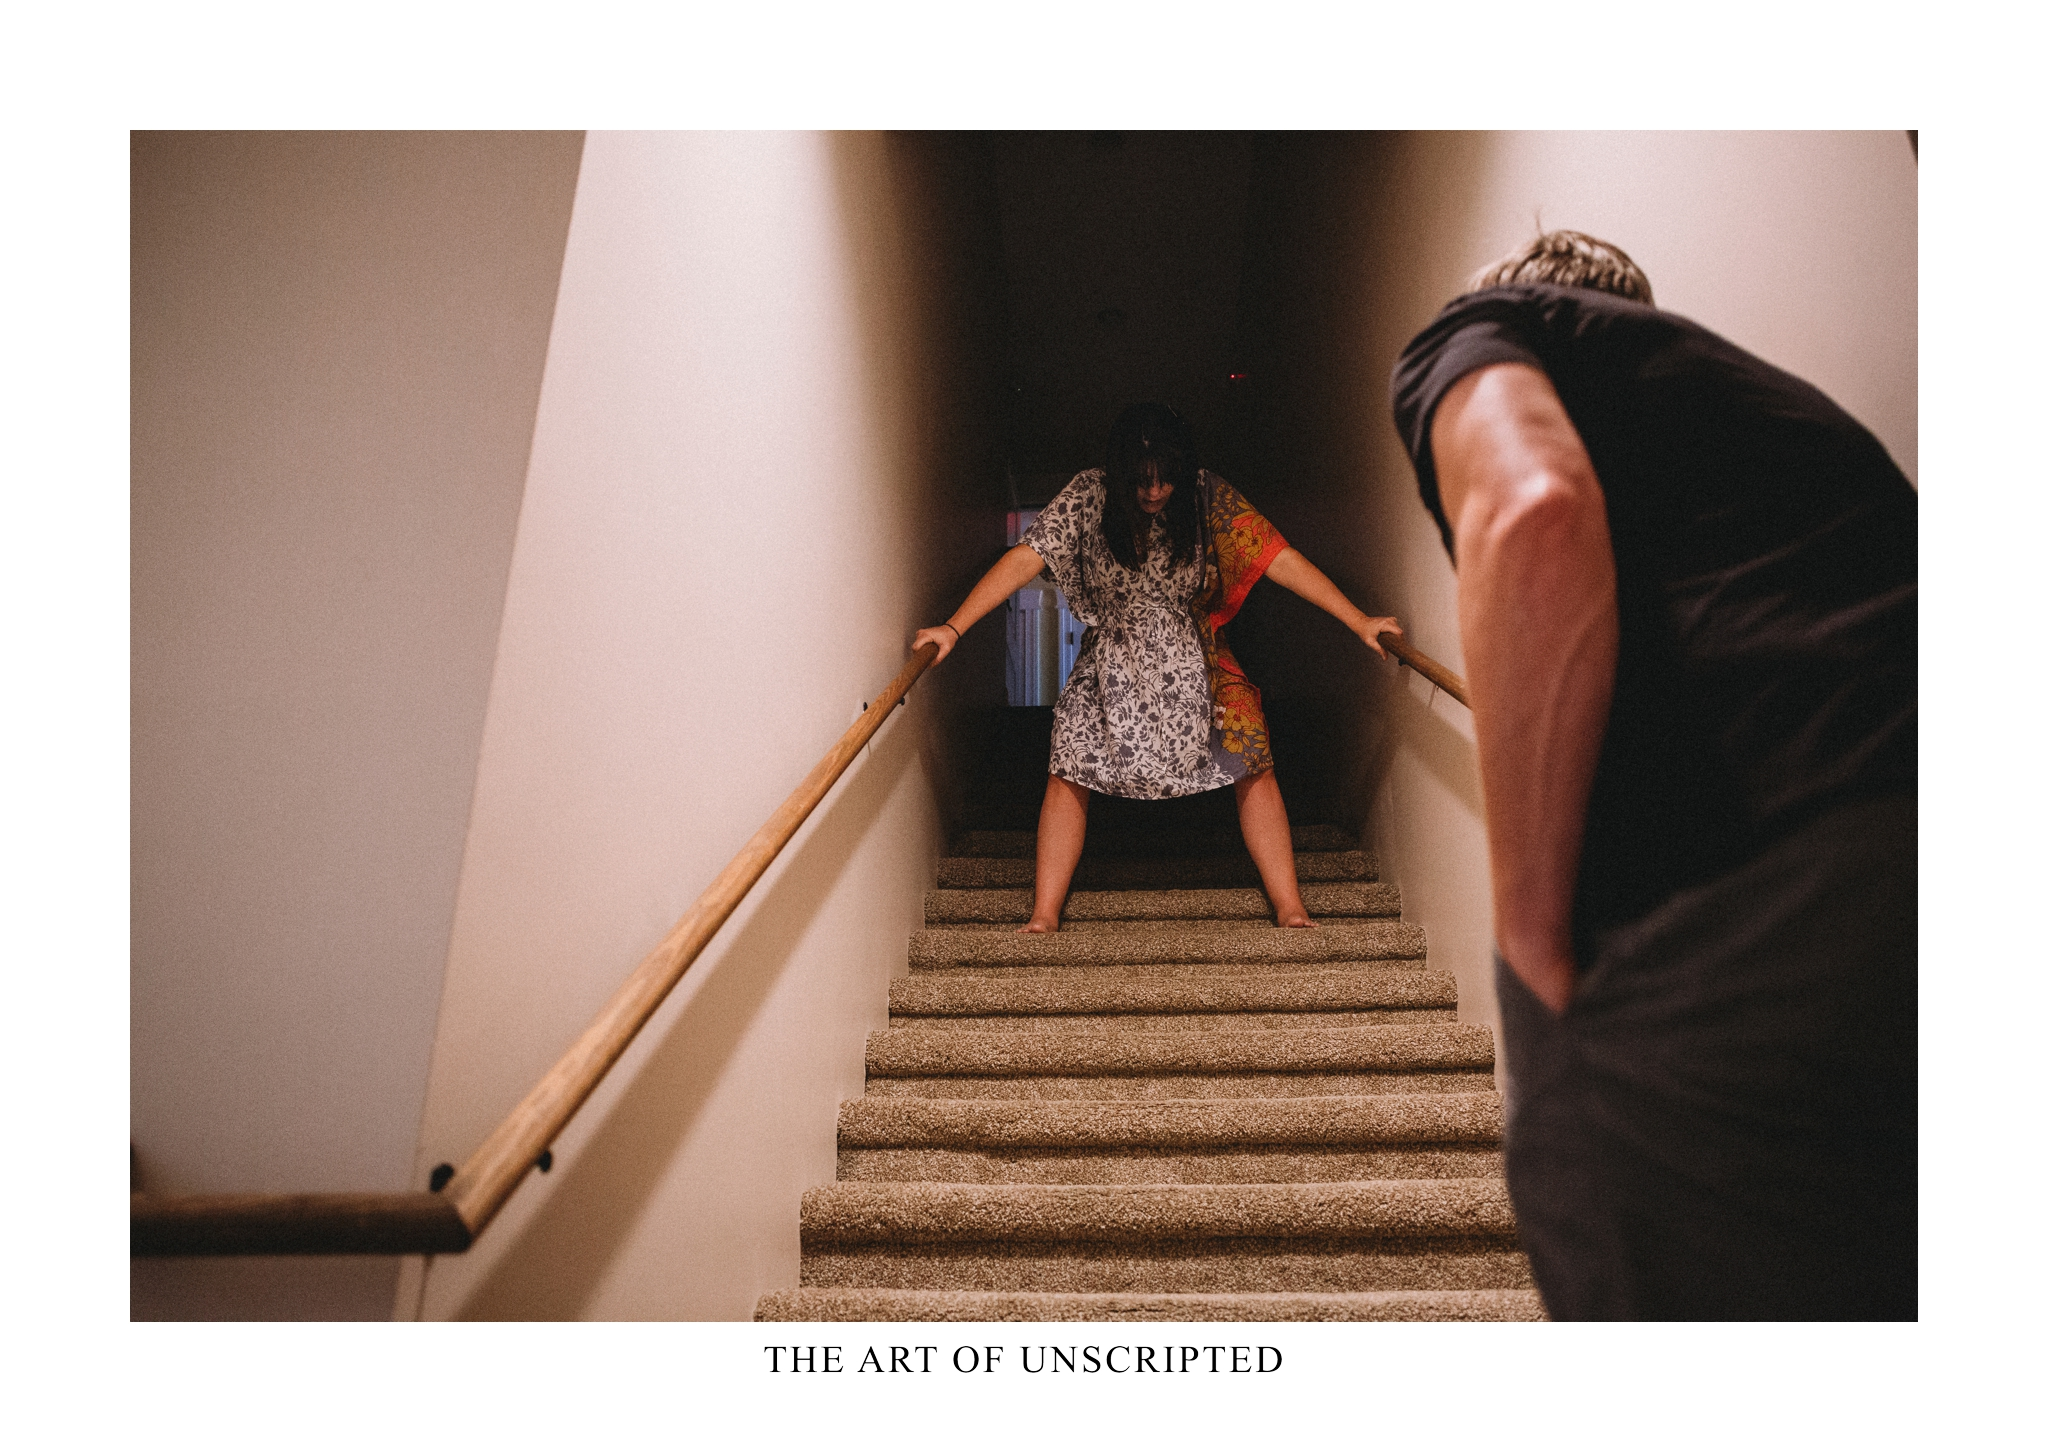 2017-06-10_065203__THE ART OF UNSCRIPTED_SPRINGFIELD MO_BIRTH PHOTOGRAPHER_ DOCUMENTARY_STORYTELLING_417_PHOTOGRAPHER